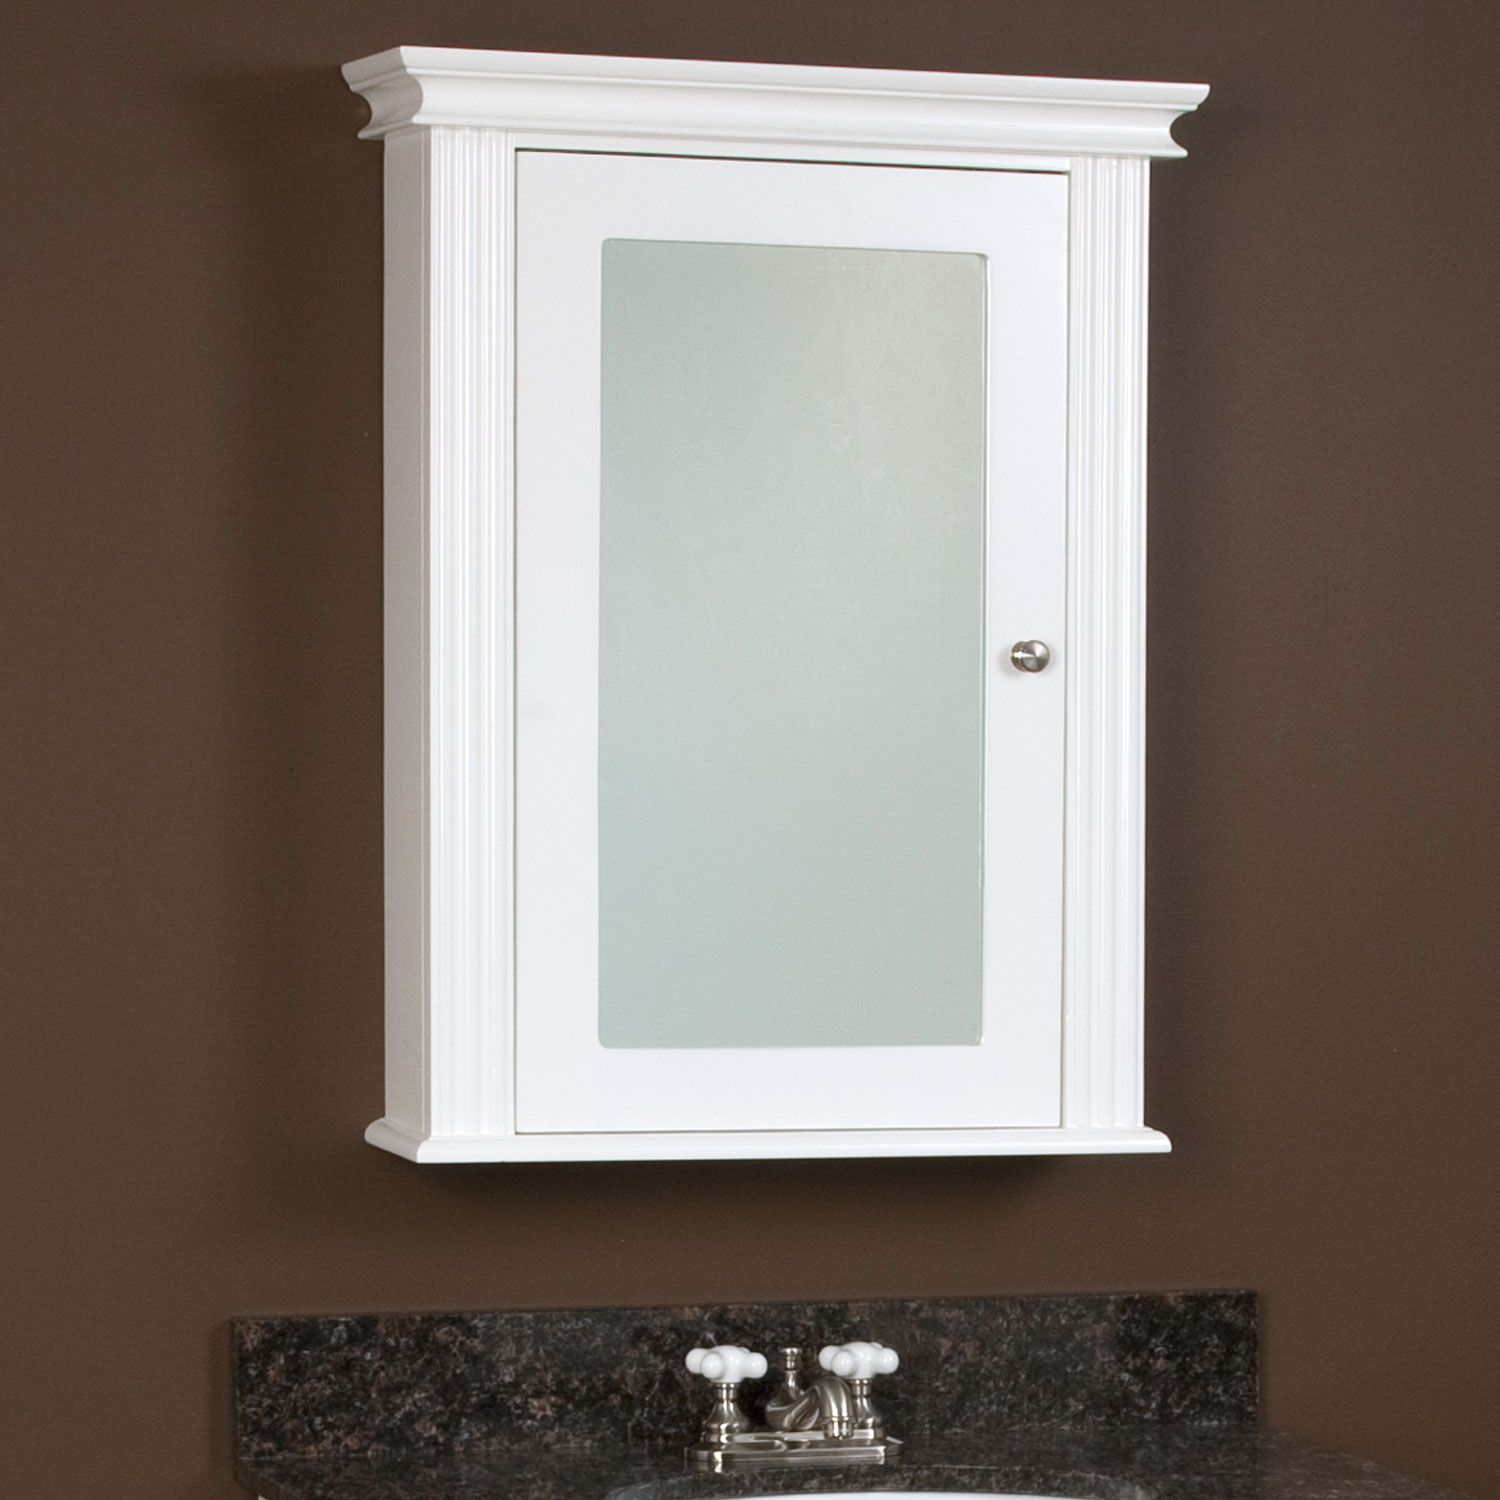 Milforde Collection Medicine Cabinet with Mirror White